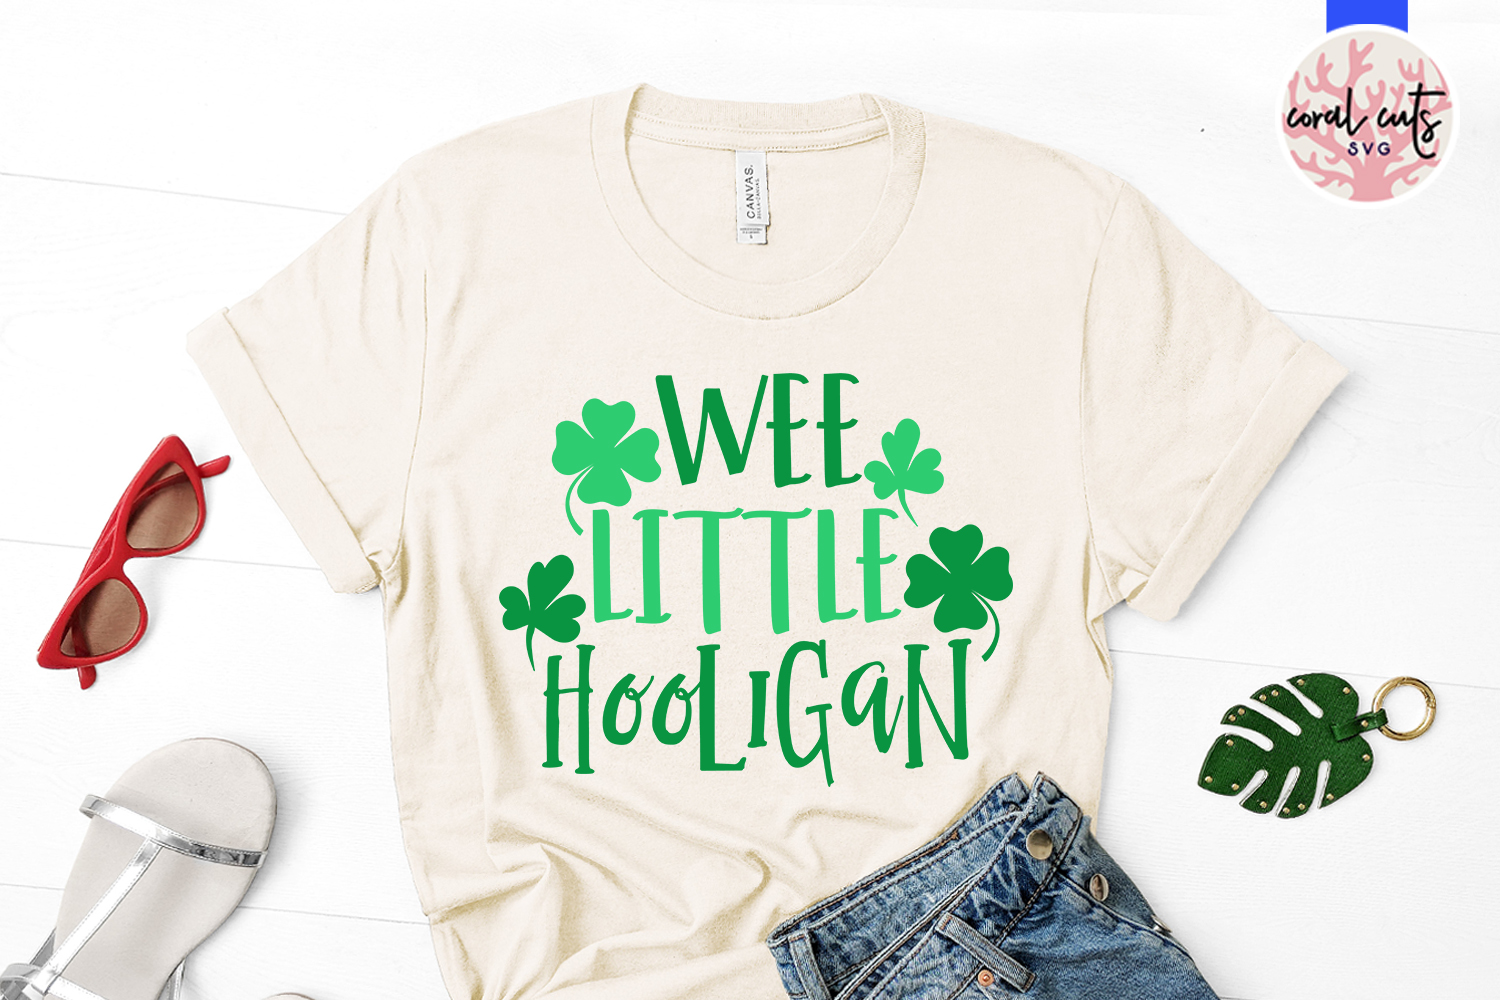 Wee little hooligan - St. Patrick's Day SVG EPS DXF PNG example image 2